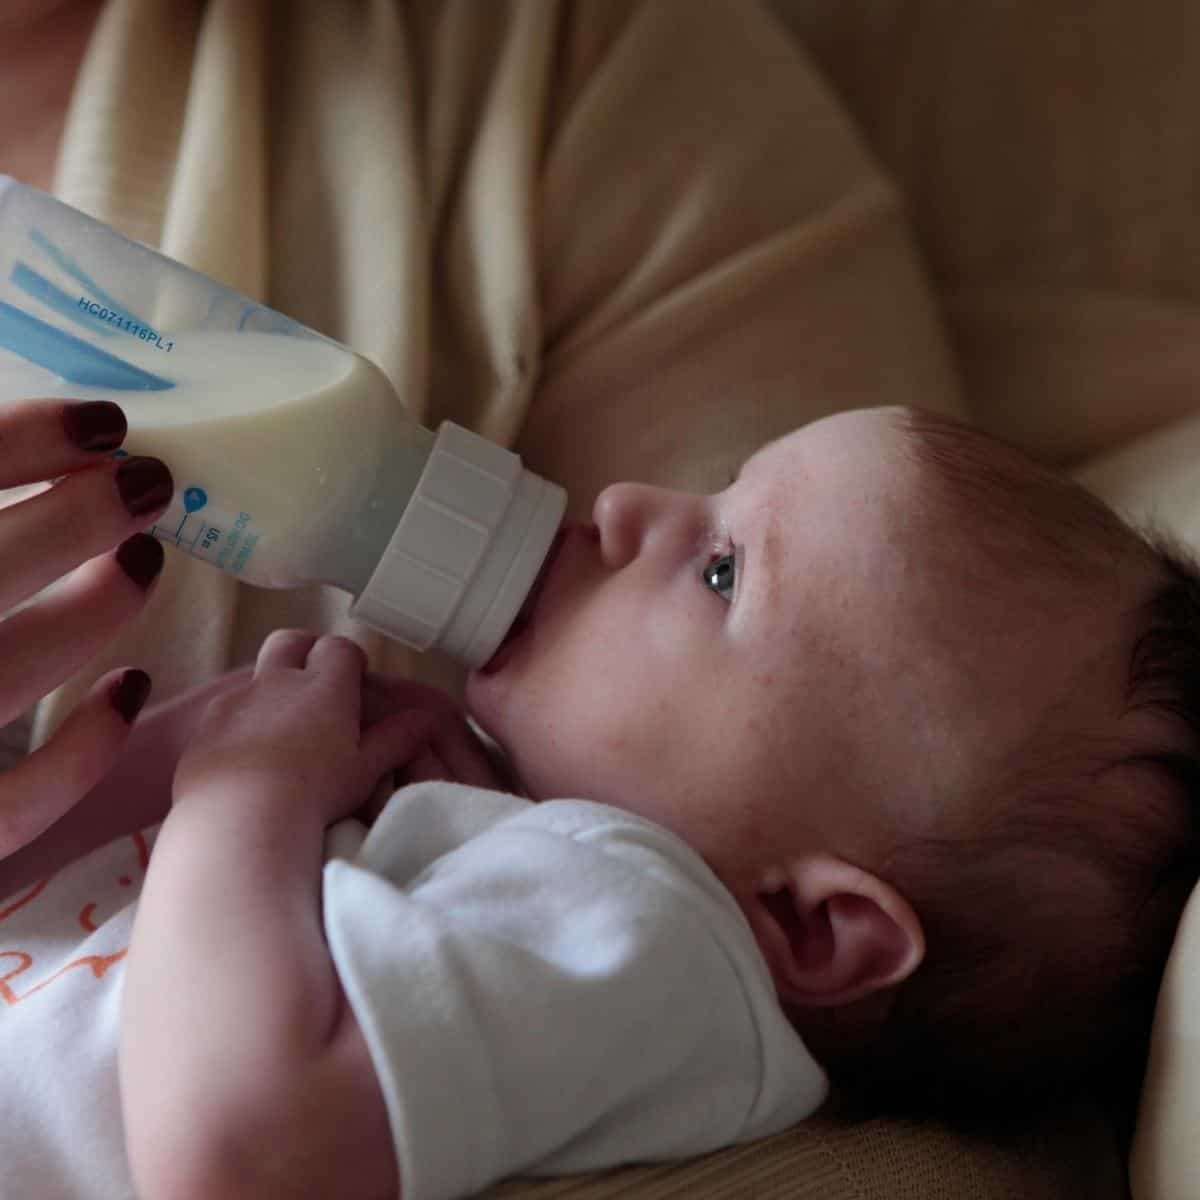 mother is holding baby while the baby is drinking formula from a bottle